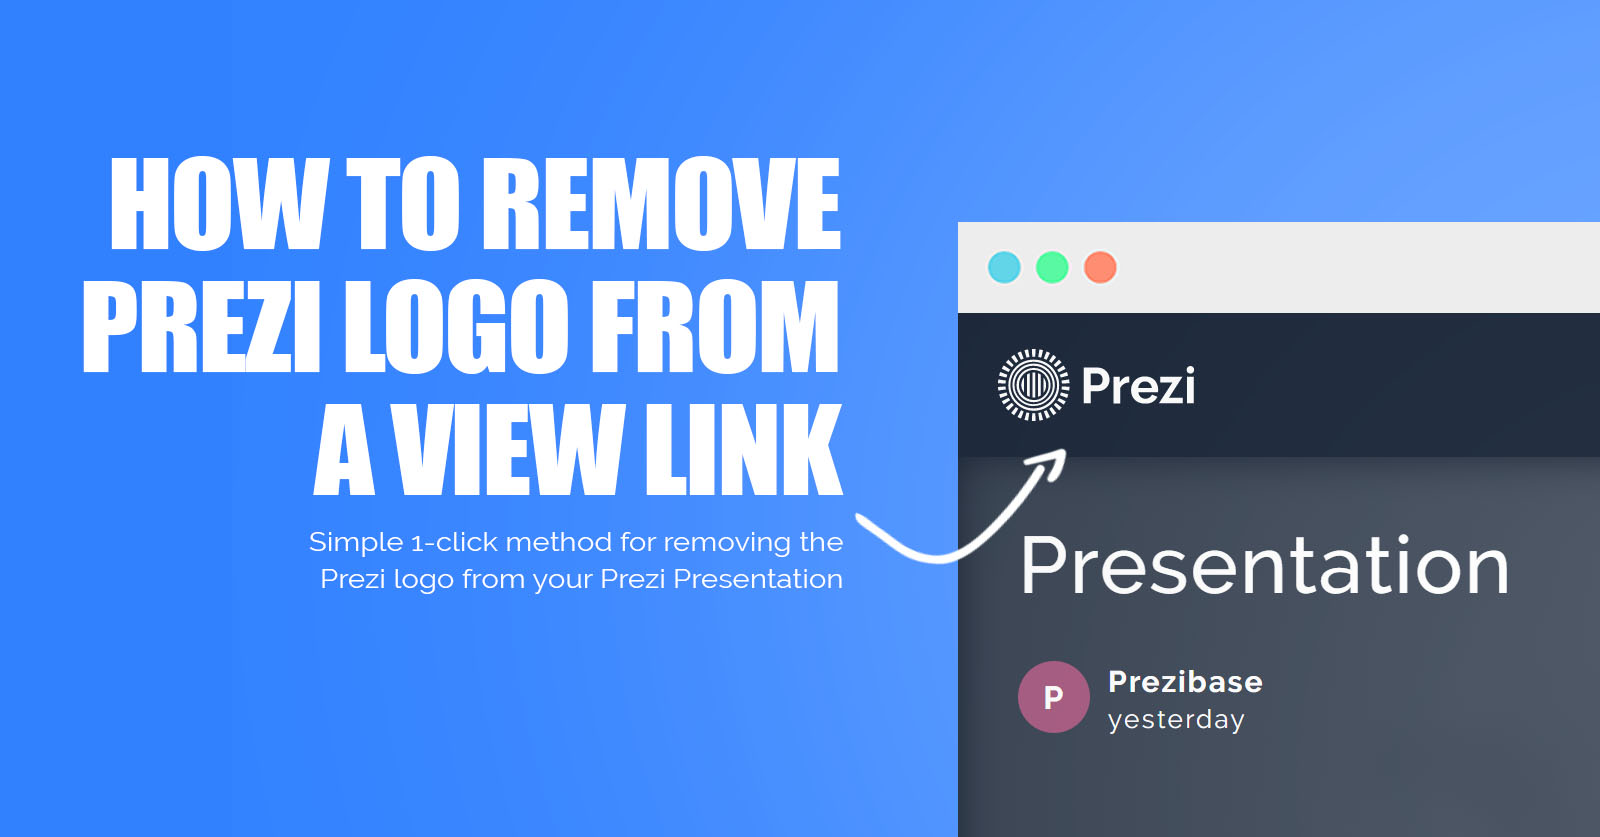 remove-prezi-logo-from-presentation-share-view-link